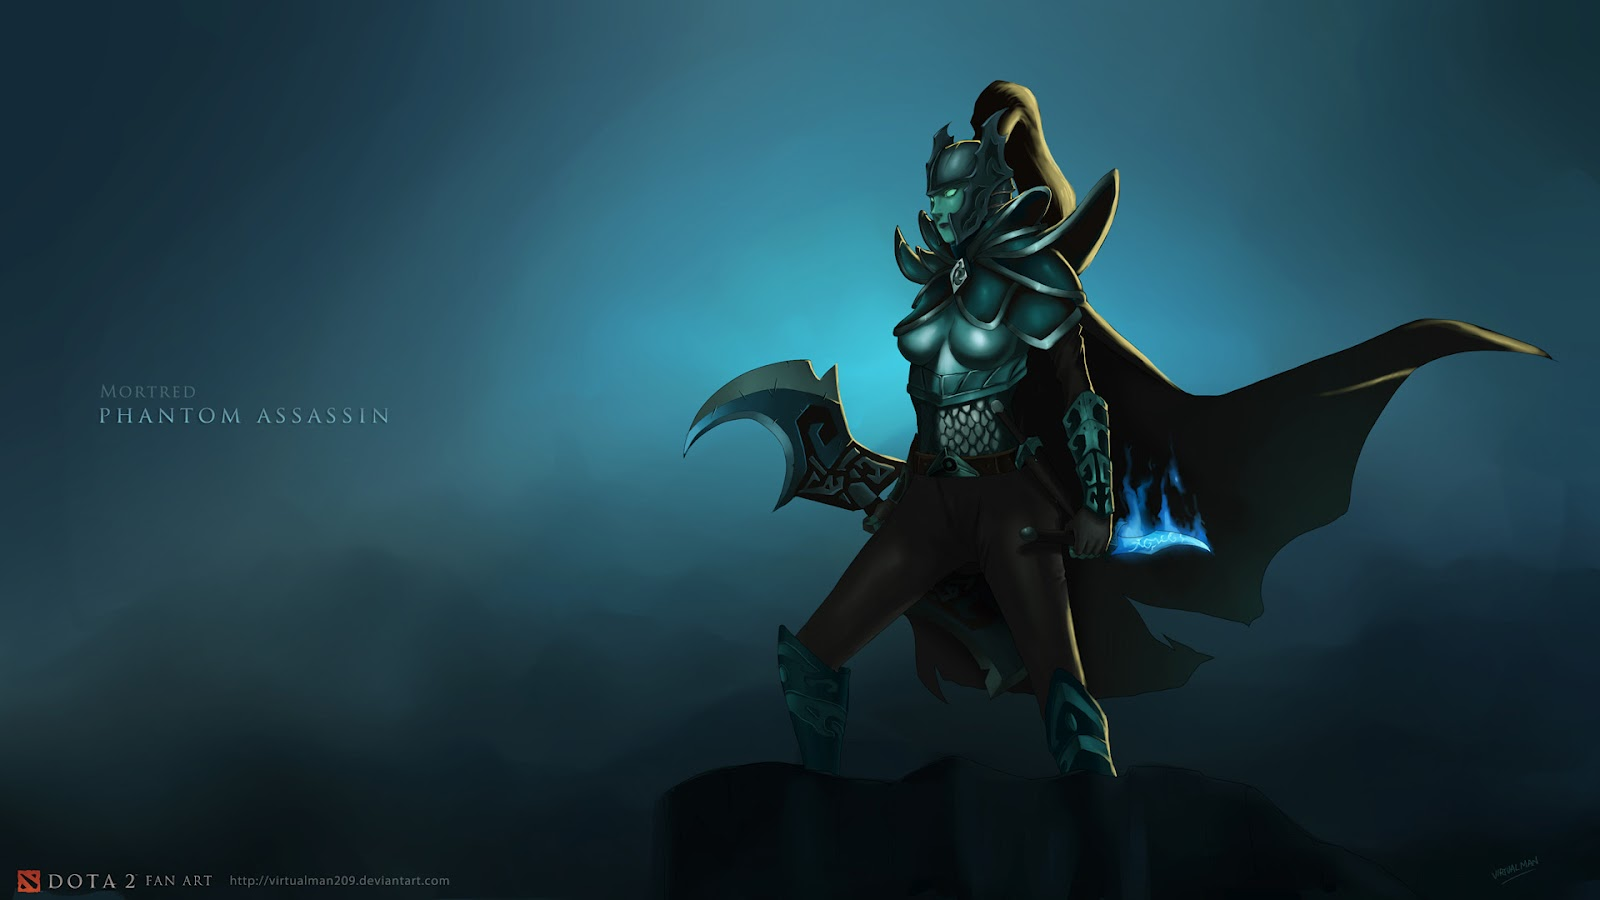 Wallpaper Abyss Explore the Collection Dota Video Game DotA 2 343610 1600x900